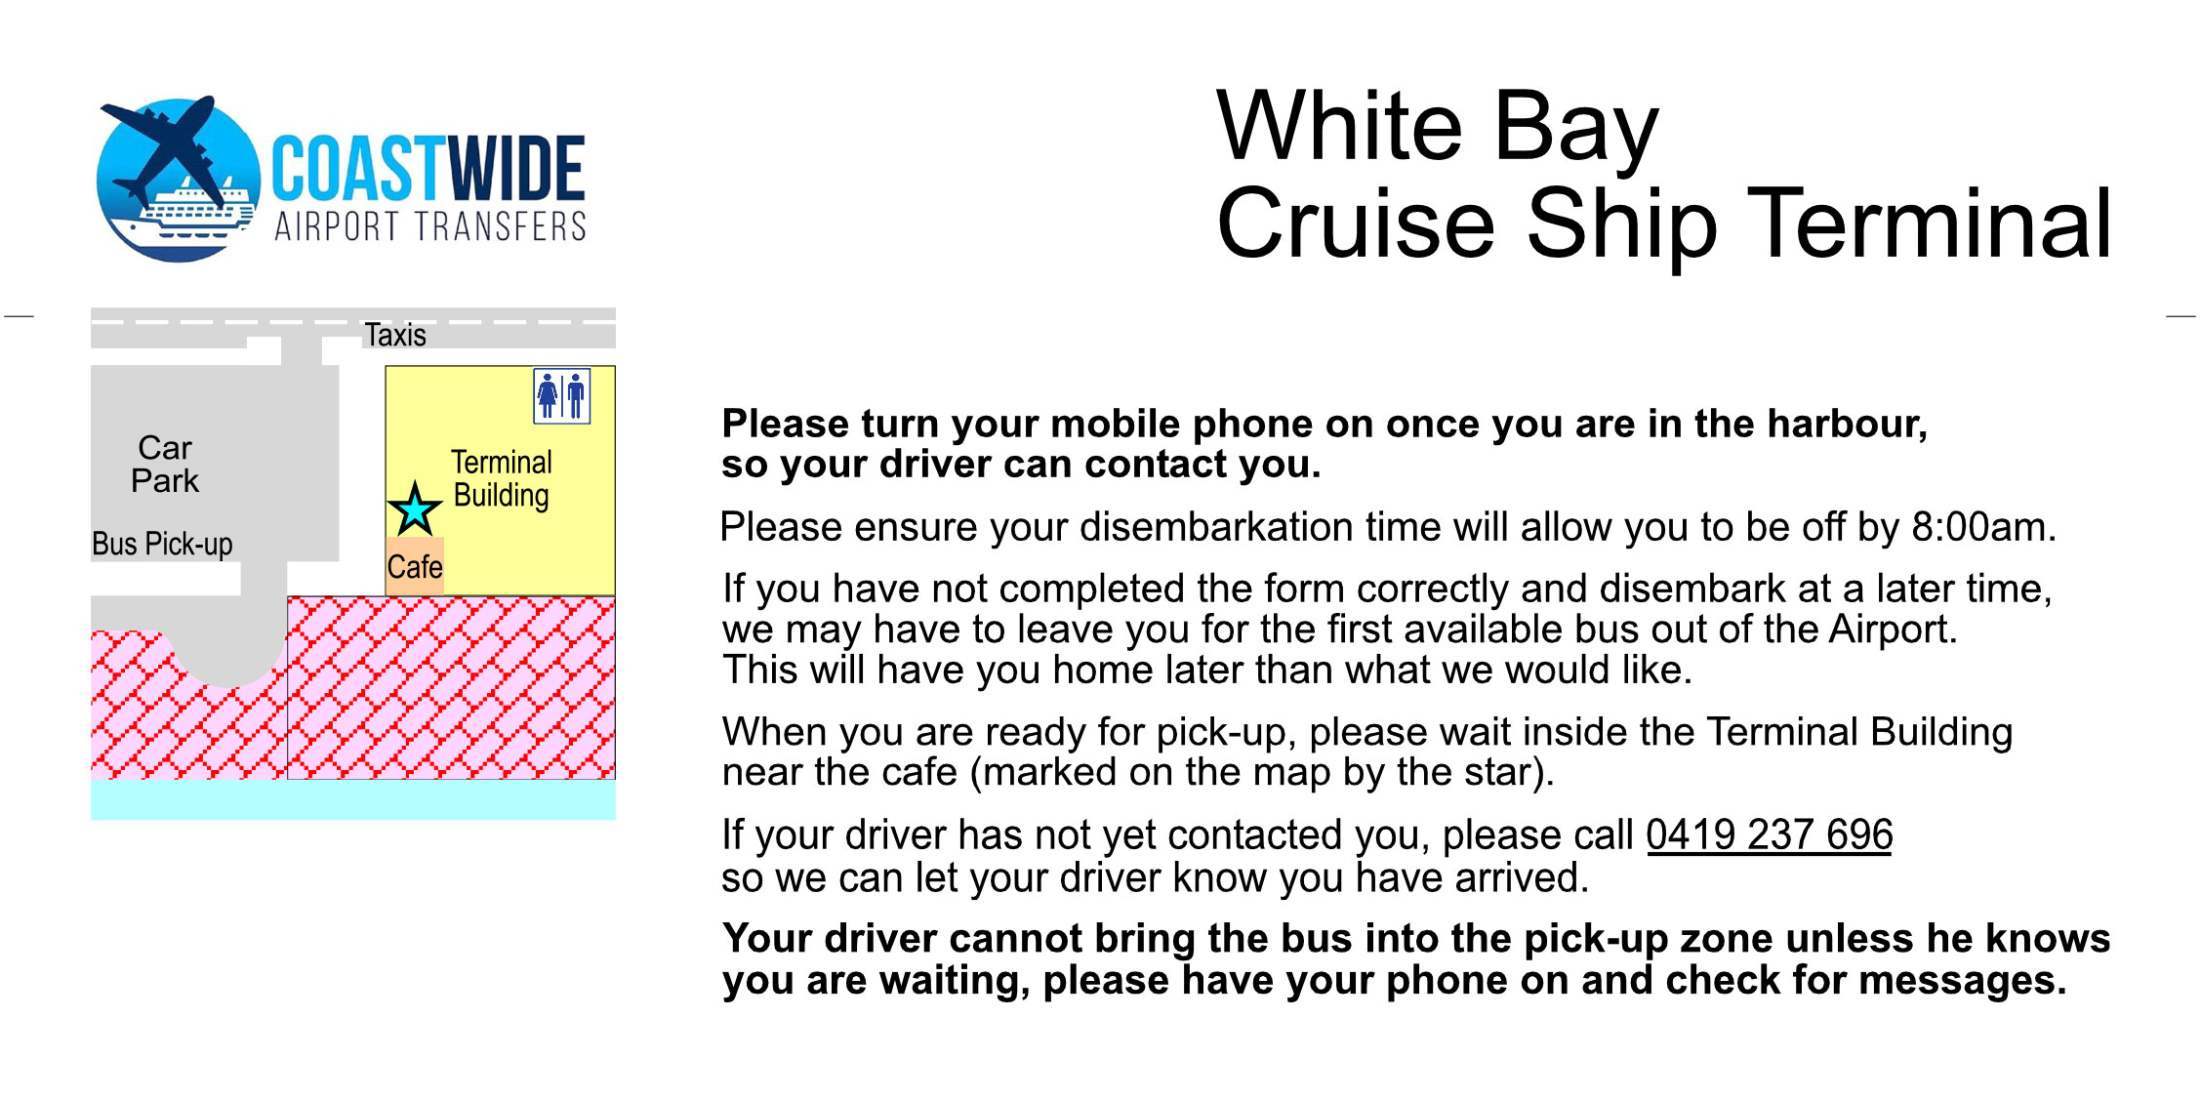 White Bay Cruise Ship Terminal